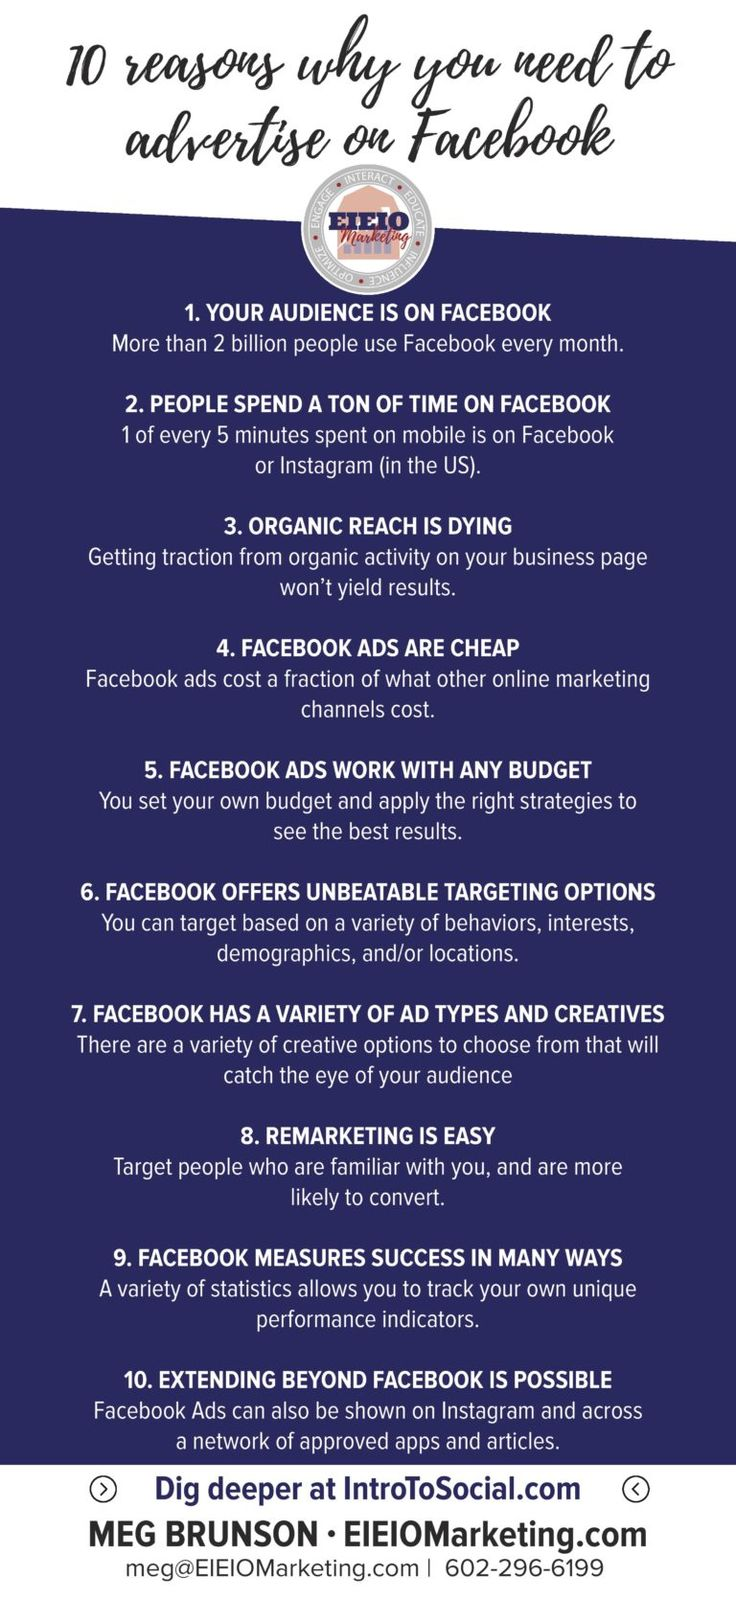 Follow up with this blog post! Top 20 Most Often Missed Facebook Advertising Best Practices - EIEIOMarketing.com